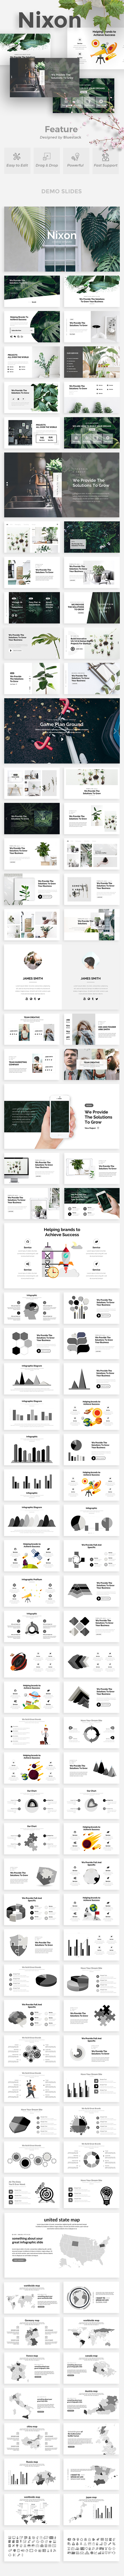 Nixon Creative Powerpoint Template - Creative PowerPoint Templates